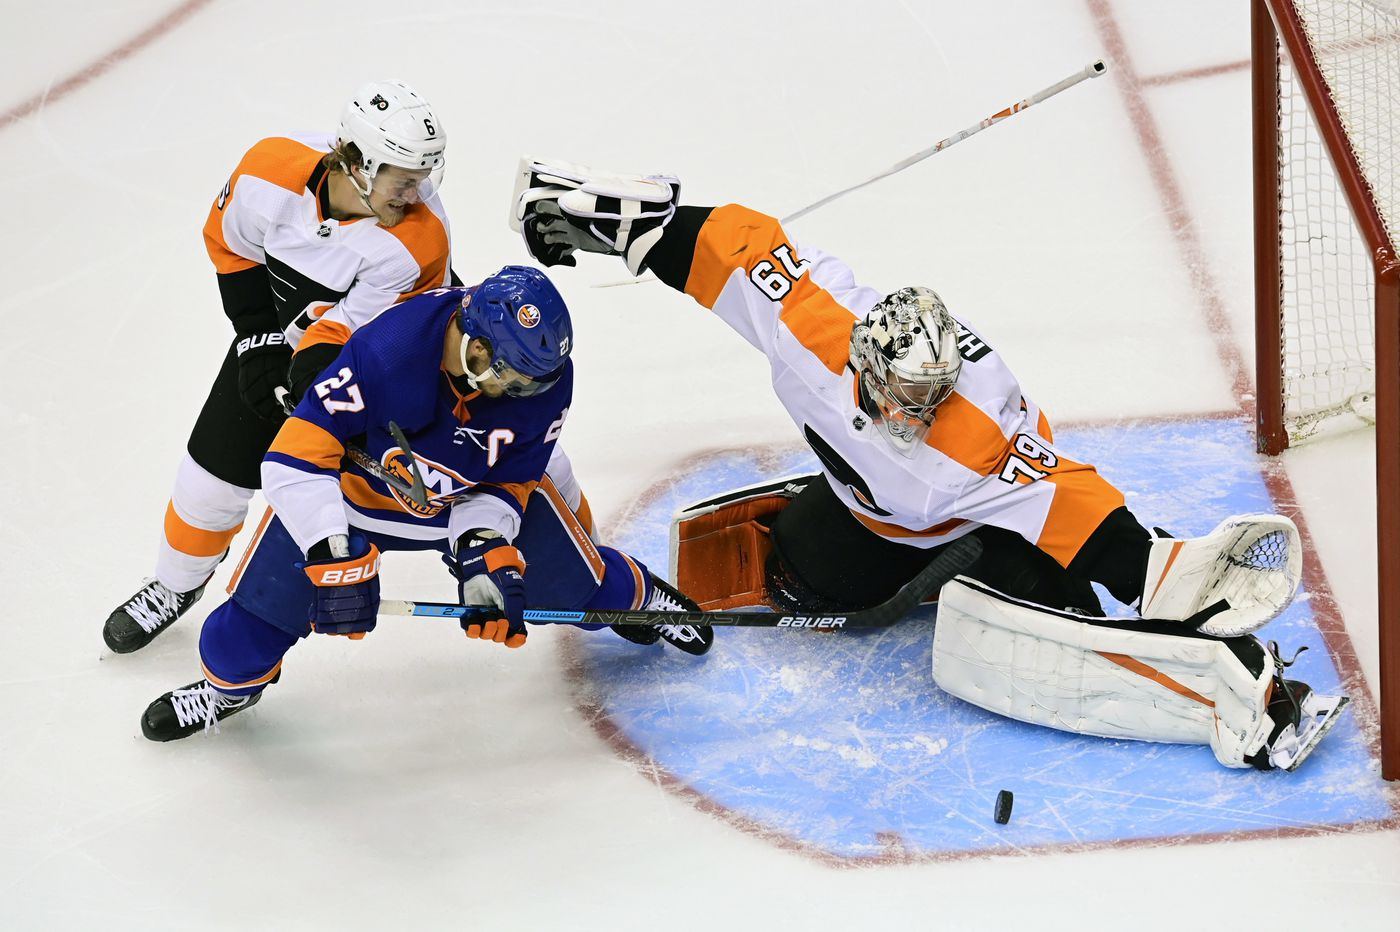 The Flyers' season needed saving in Game 6, and Carter Hart was there to rescue them again | Mike Sielski